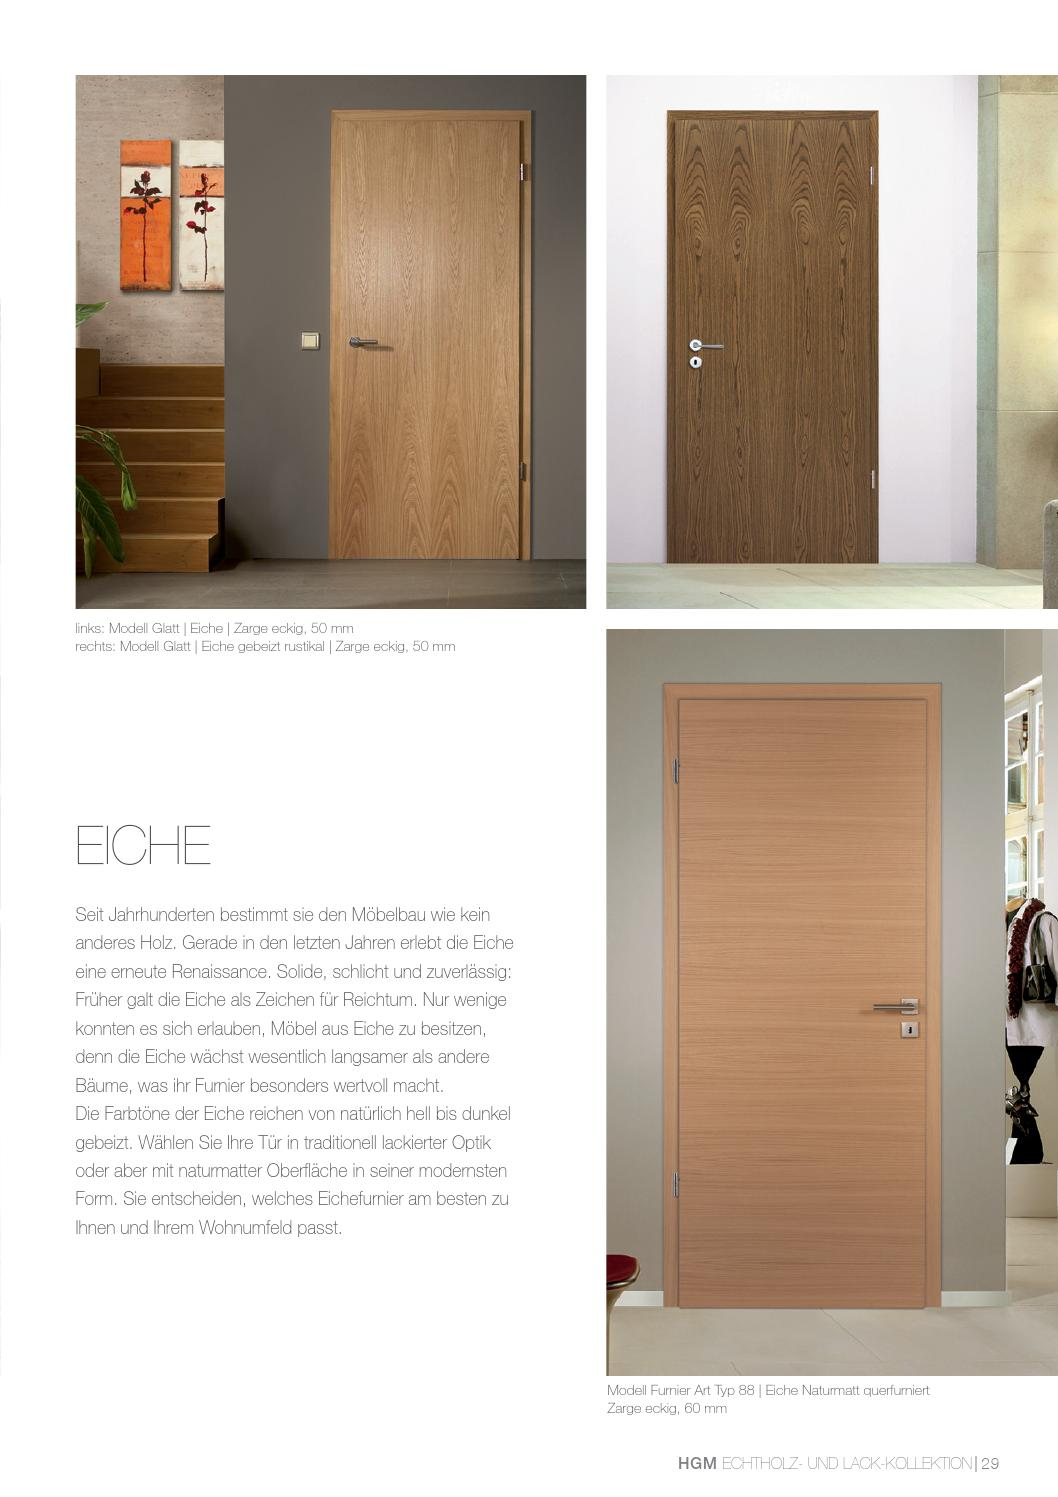 Hgm Echtholzlack By Kaiser Design Issuu